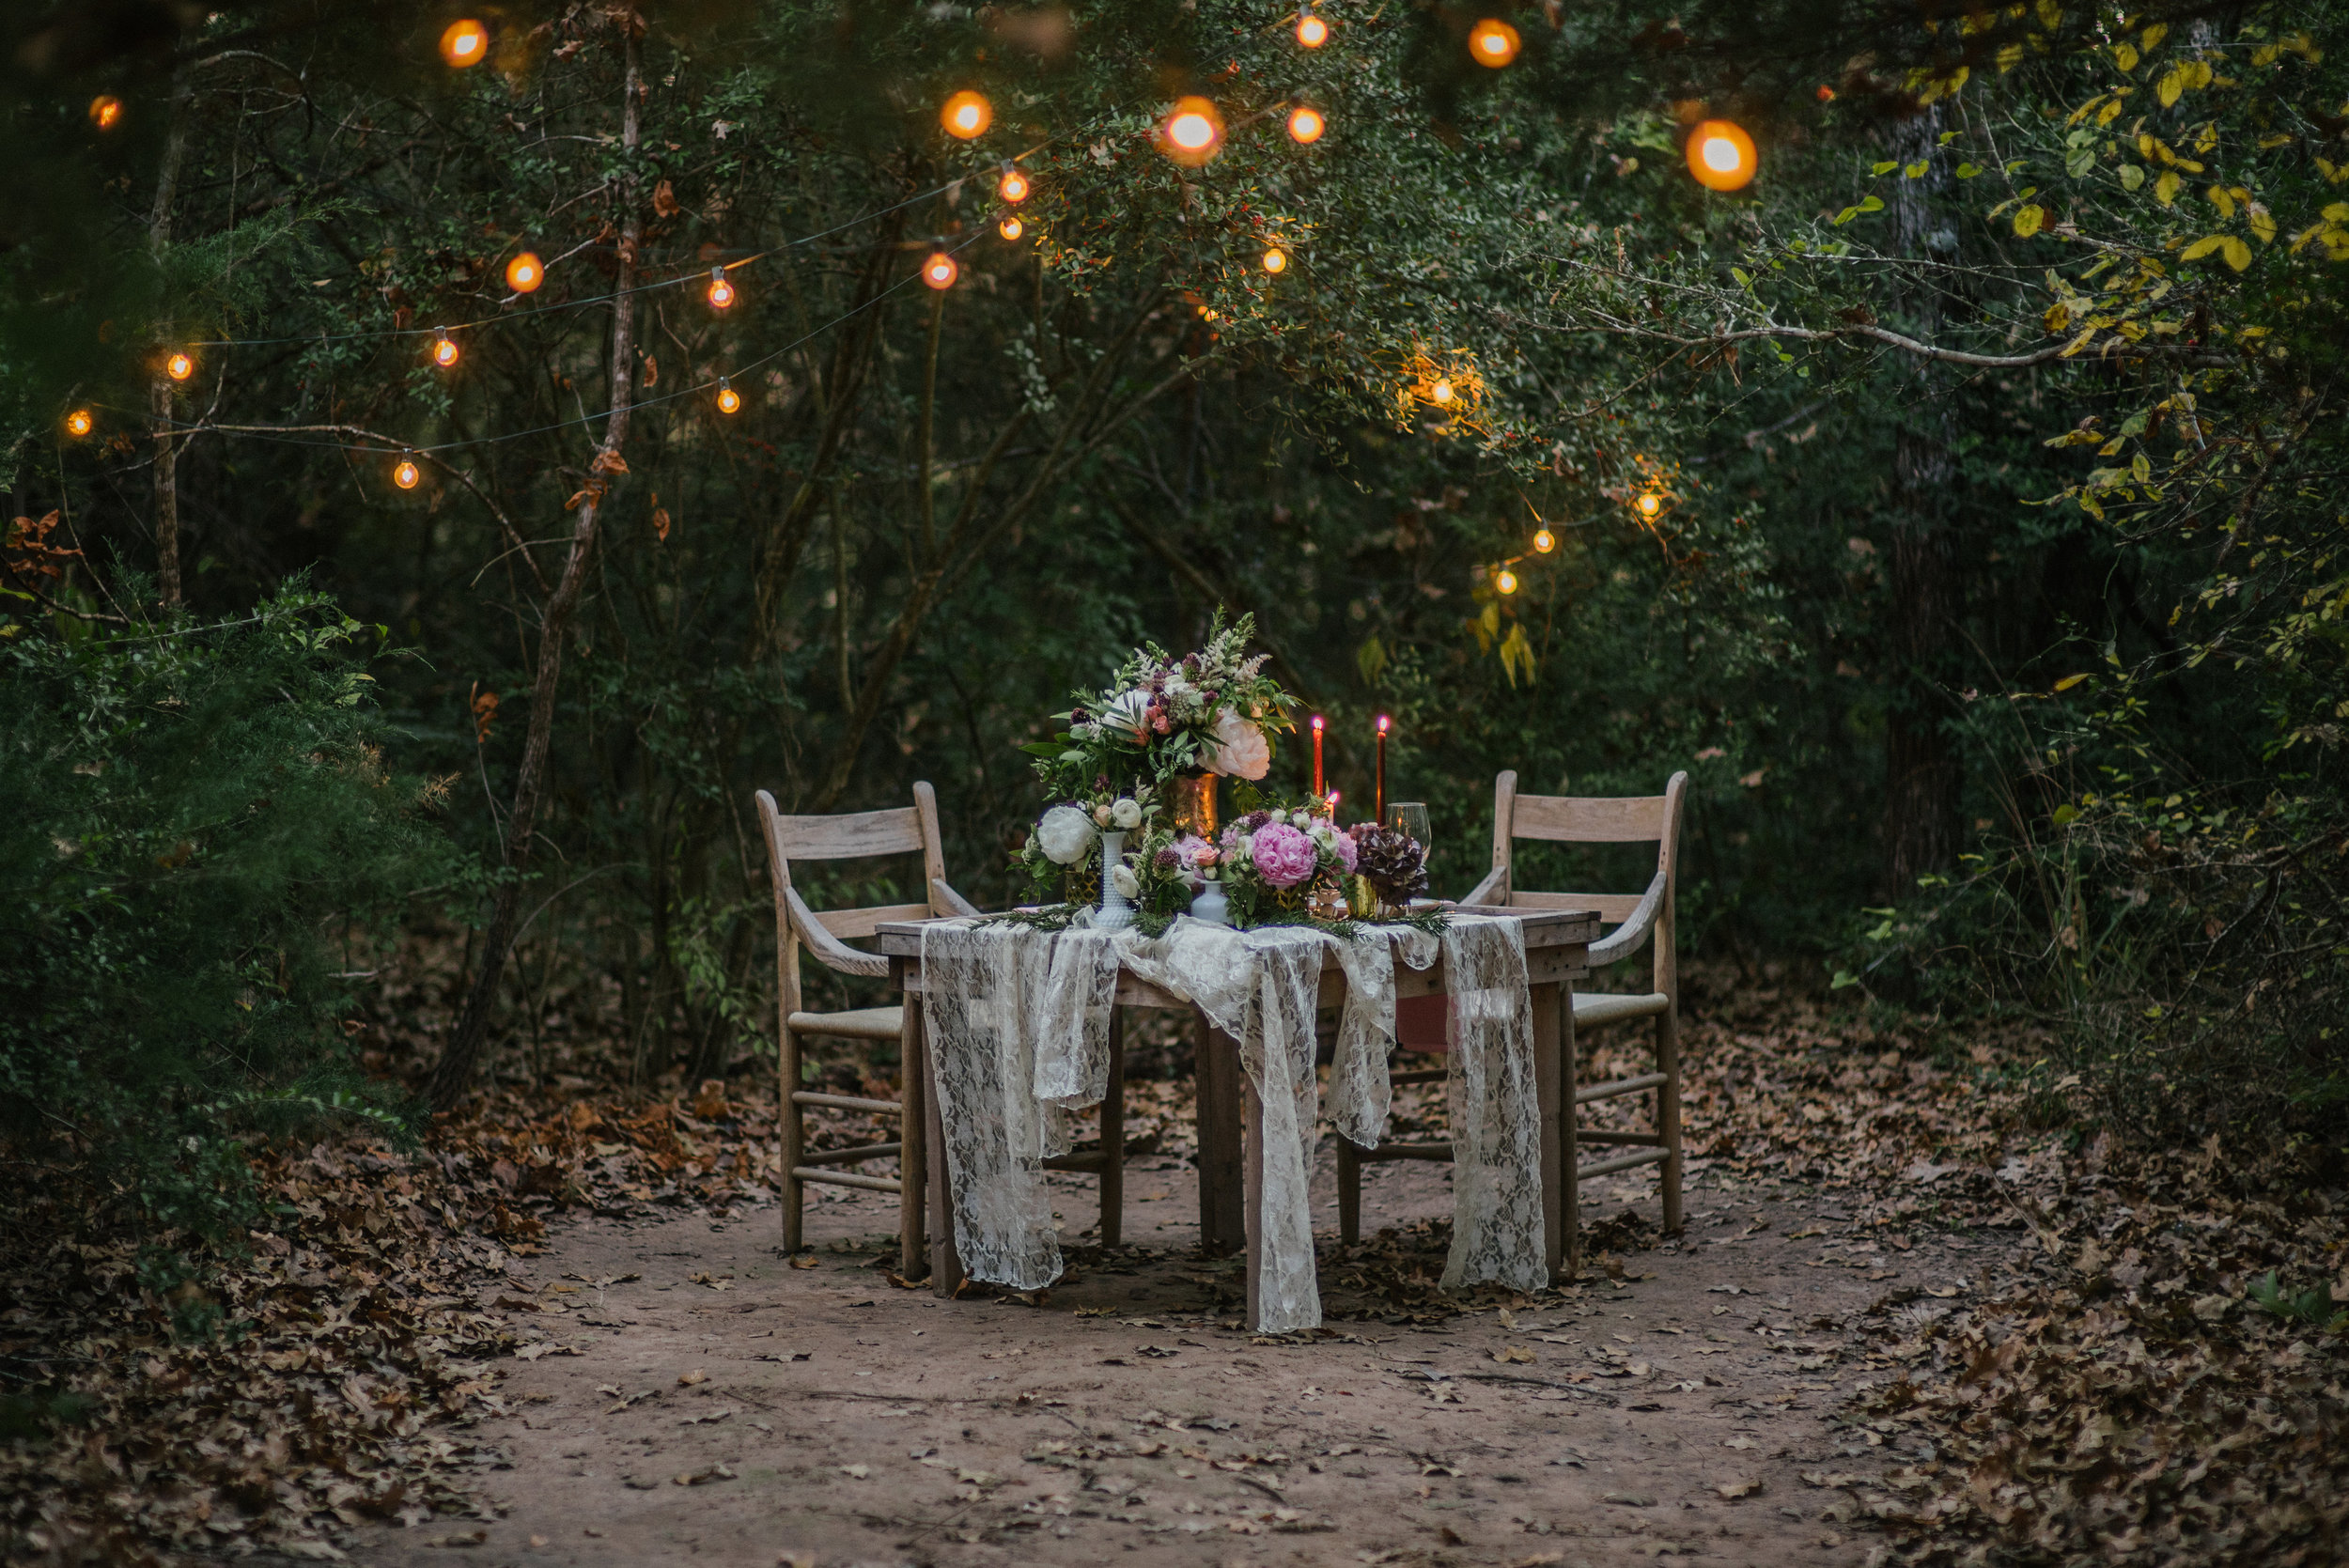 - We offer a wide range of services to fit any event or wedding budget. We focus solely on the creation and design of wedding and event florals. To accommodate you we offer design, full-service, diy and a la carte packages to meet anyone's needs.